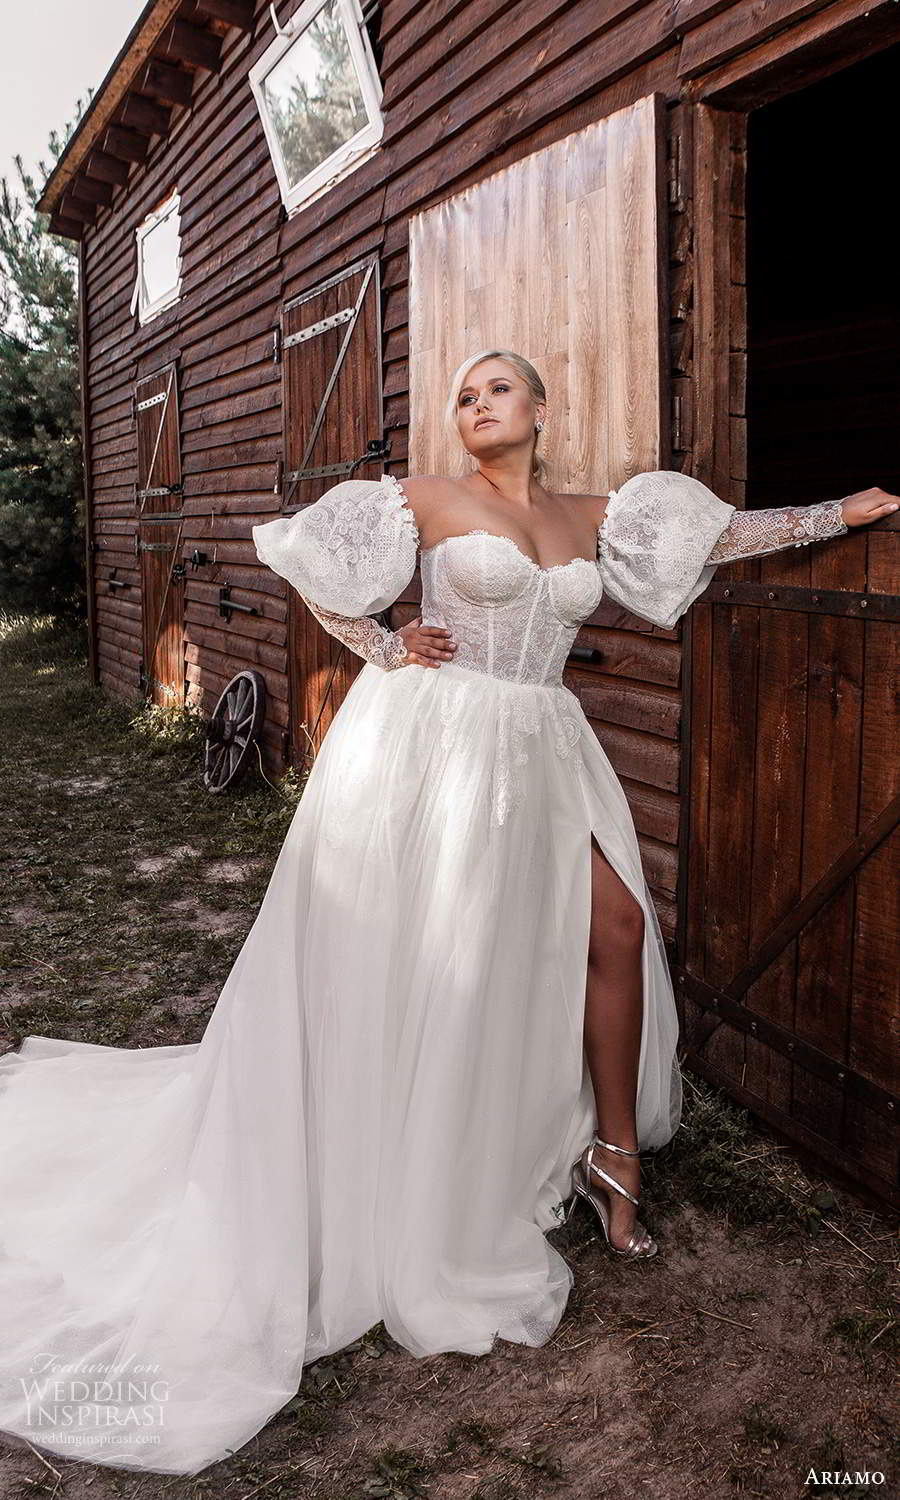 ariamo 2021 plus bridal detached puff sleeves strapless sweetheart neckline corset bodice a line ball gown wedding dress chapel train (10) mv